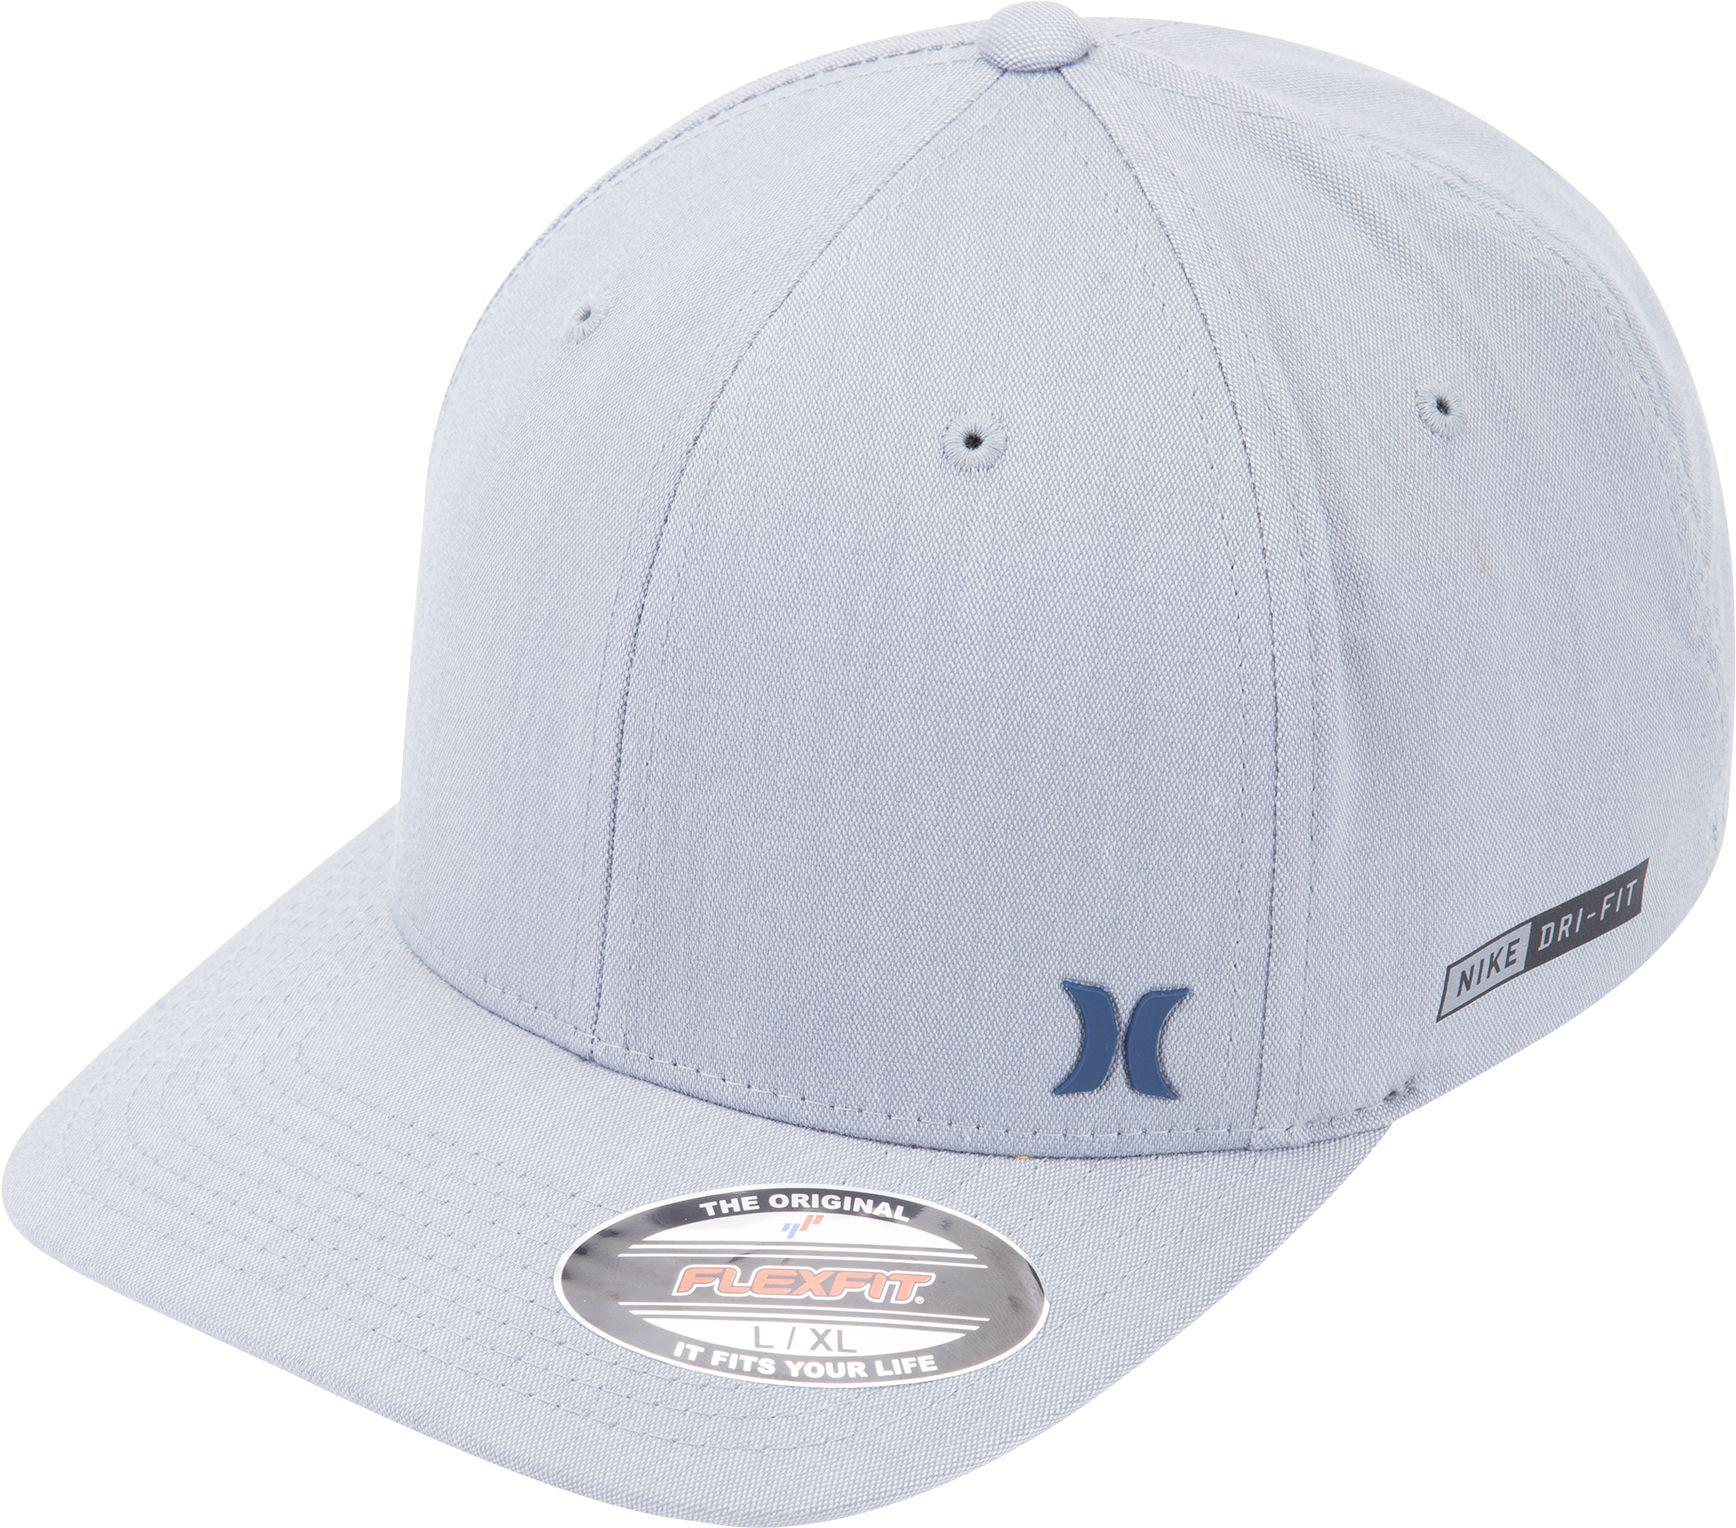 low priced b92bf b9be5 ... coupon code for lyst hurley dri fit flow flexfit hat in gray for men  2d40e 9c66d